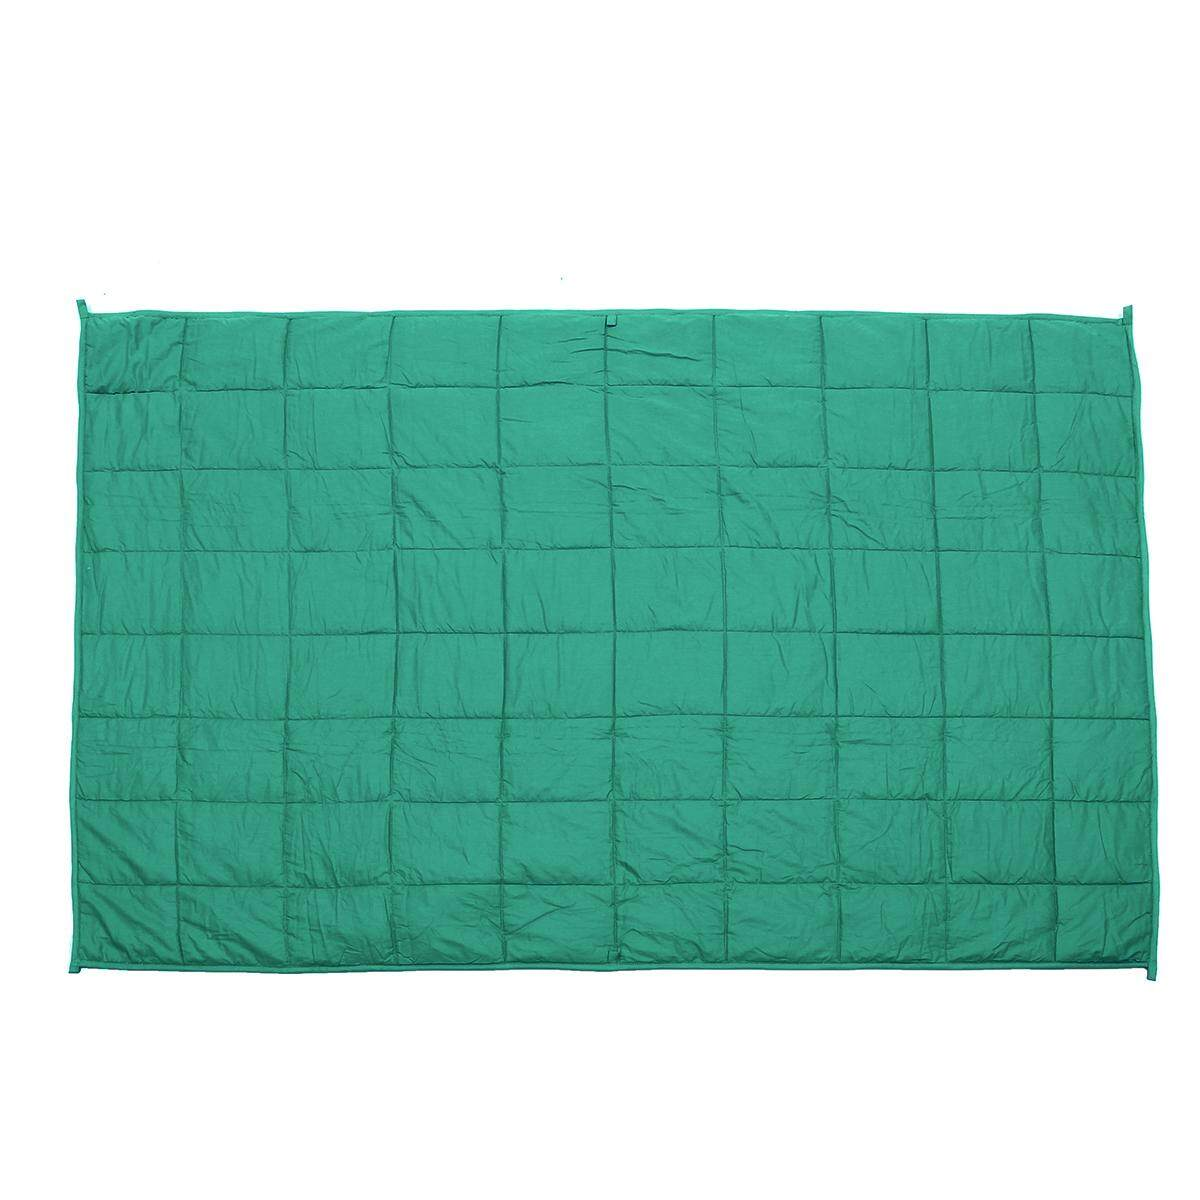 11.5kg Green Weighted Blanket Bedding Cotton Heavy Sensory Relax 120x180cm - Intl By Audew.